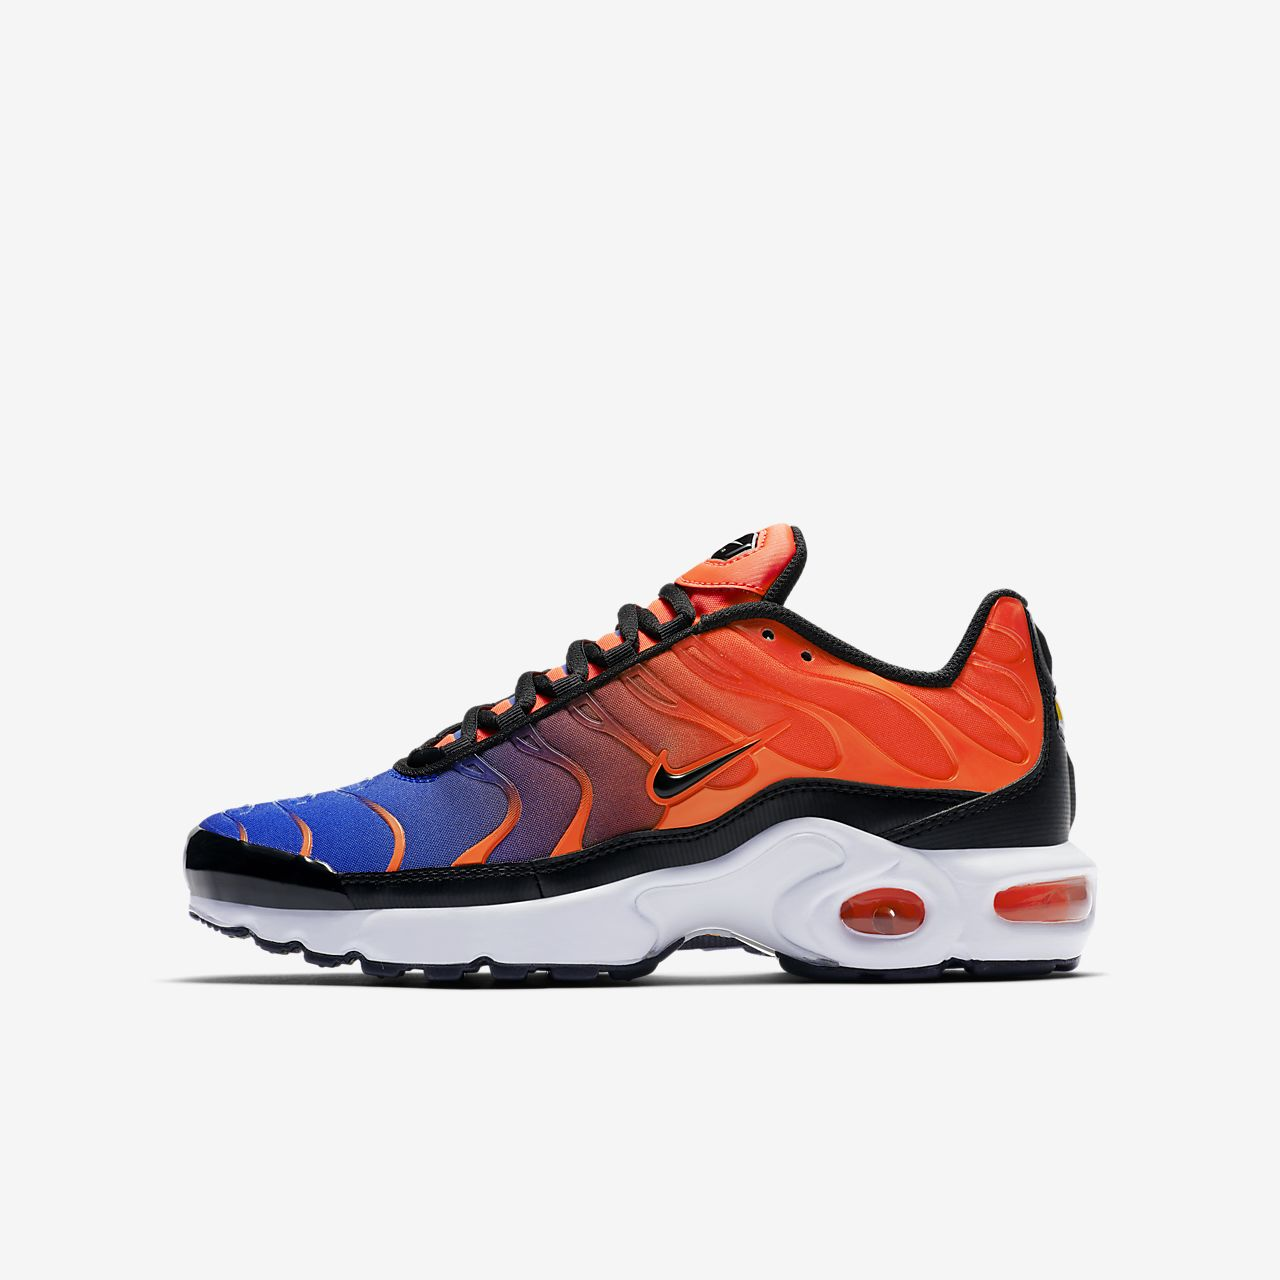 ... promo code nike air max plus tn se older kids shoe 3fe47 ca755 06af20a11